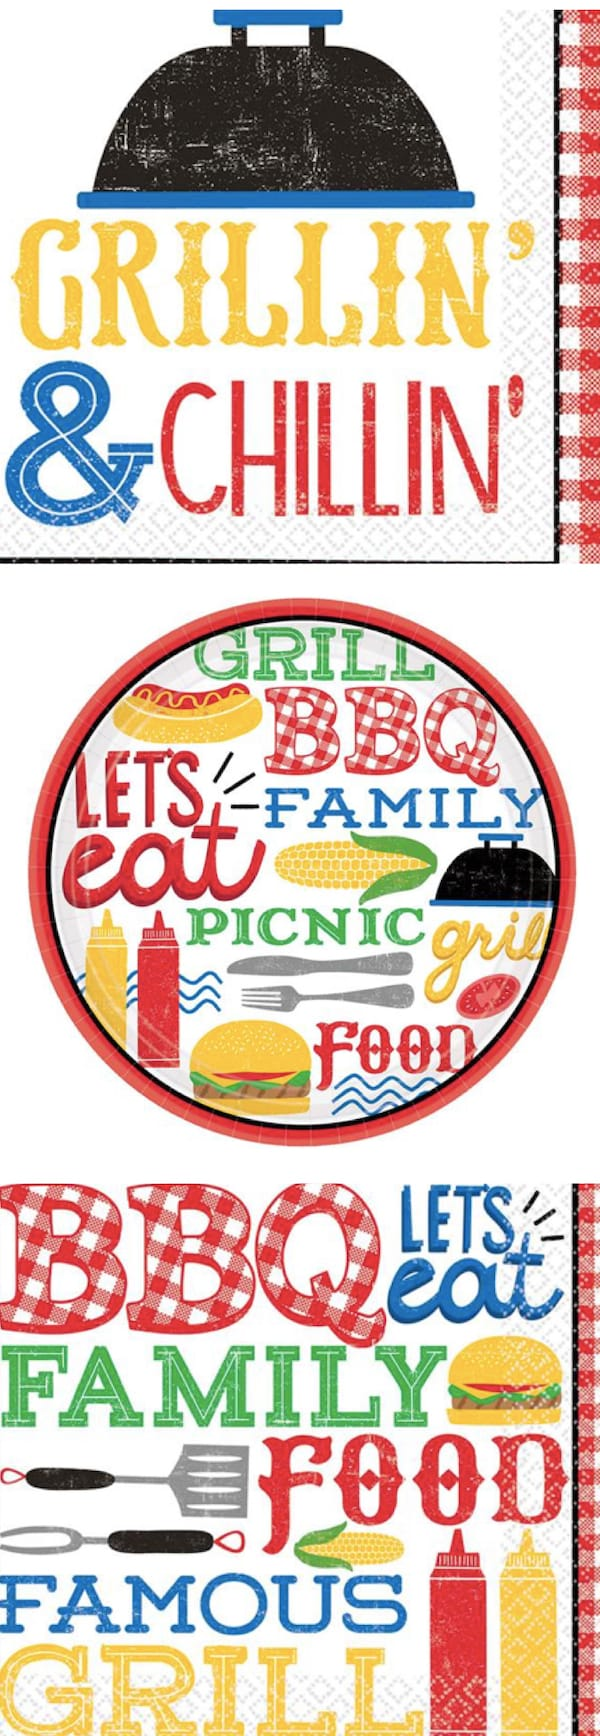 BBQ Paper Goods Plates and Napkins